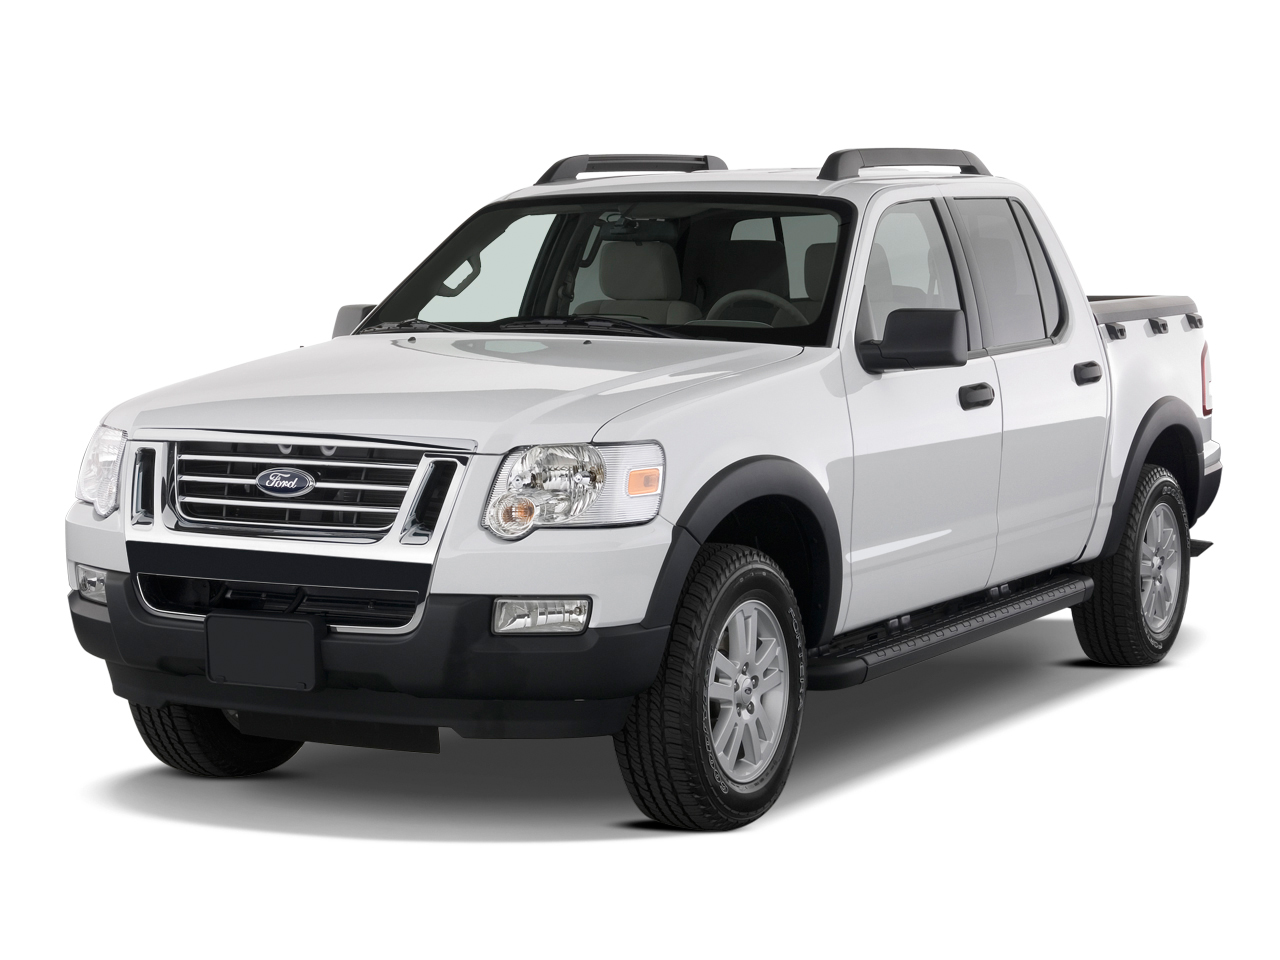 2010 ford explorer sport trac review ratings specs prices and photos the car connection. Black Bedroom Furniture Sets. Home Design Ideas